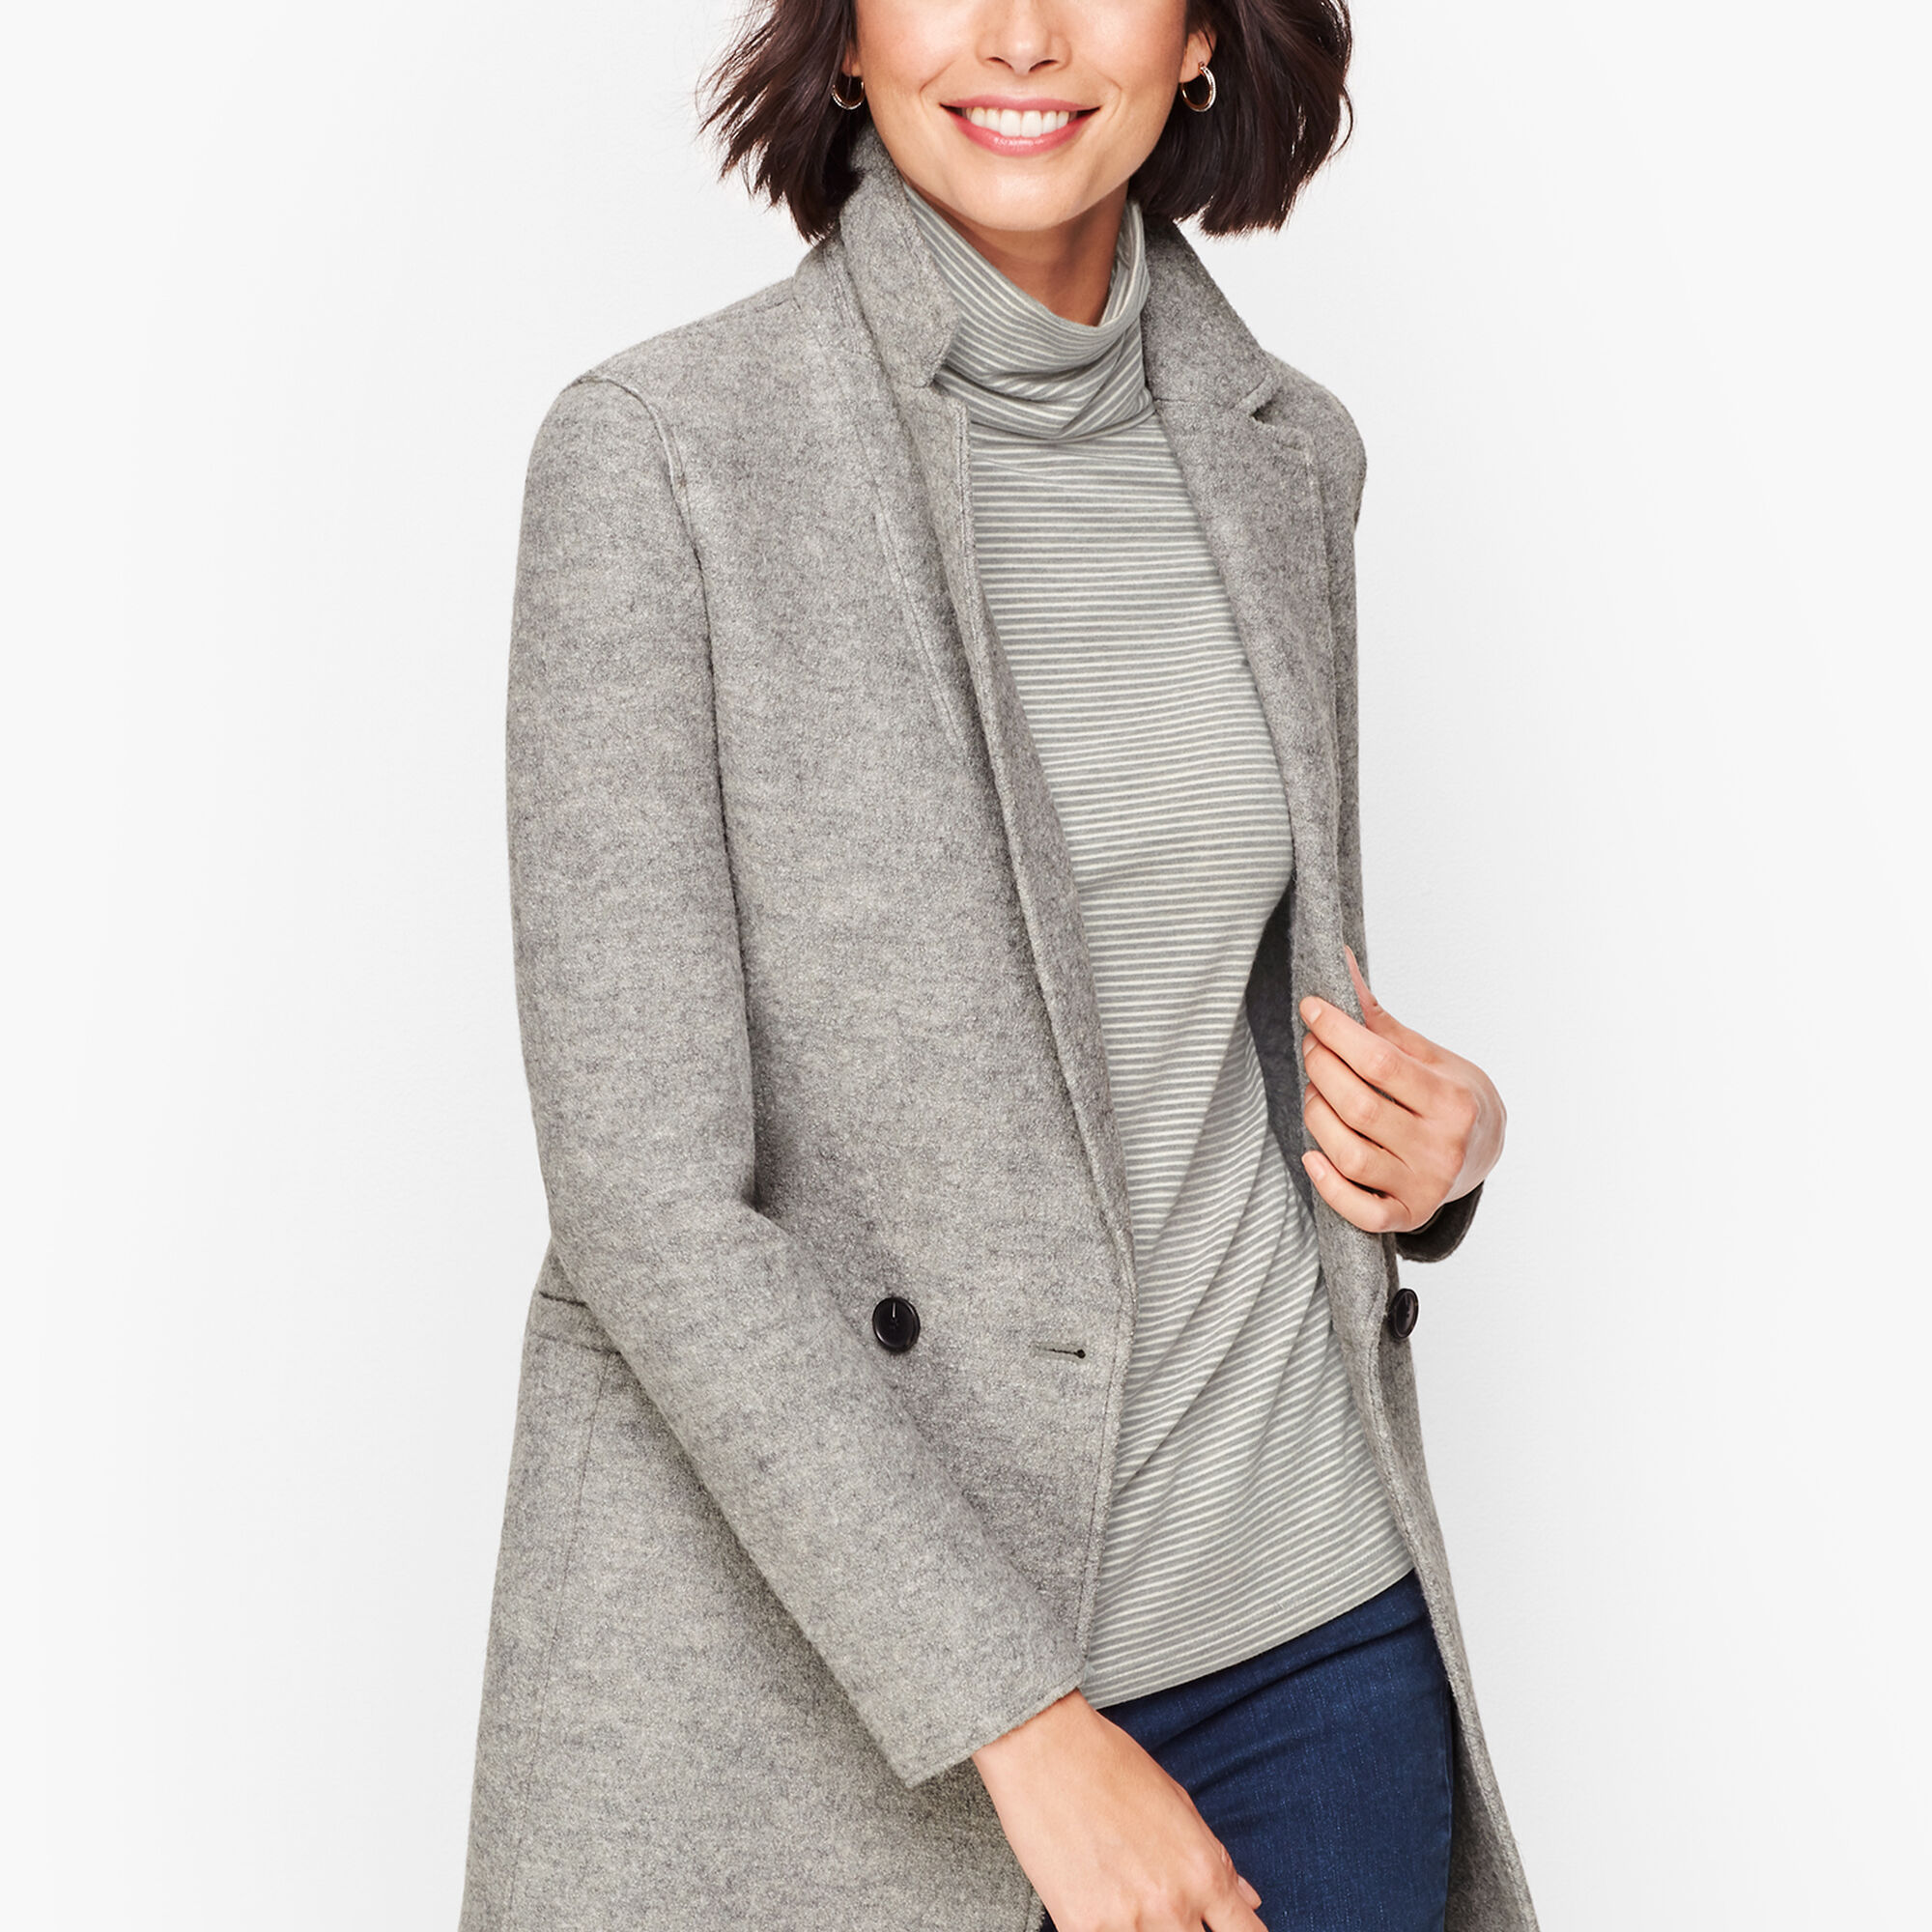 online good texture Buy Authentic Long Boiled Wool Jacket